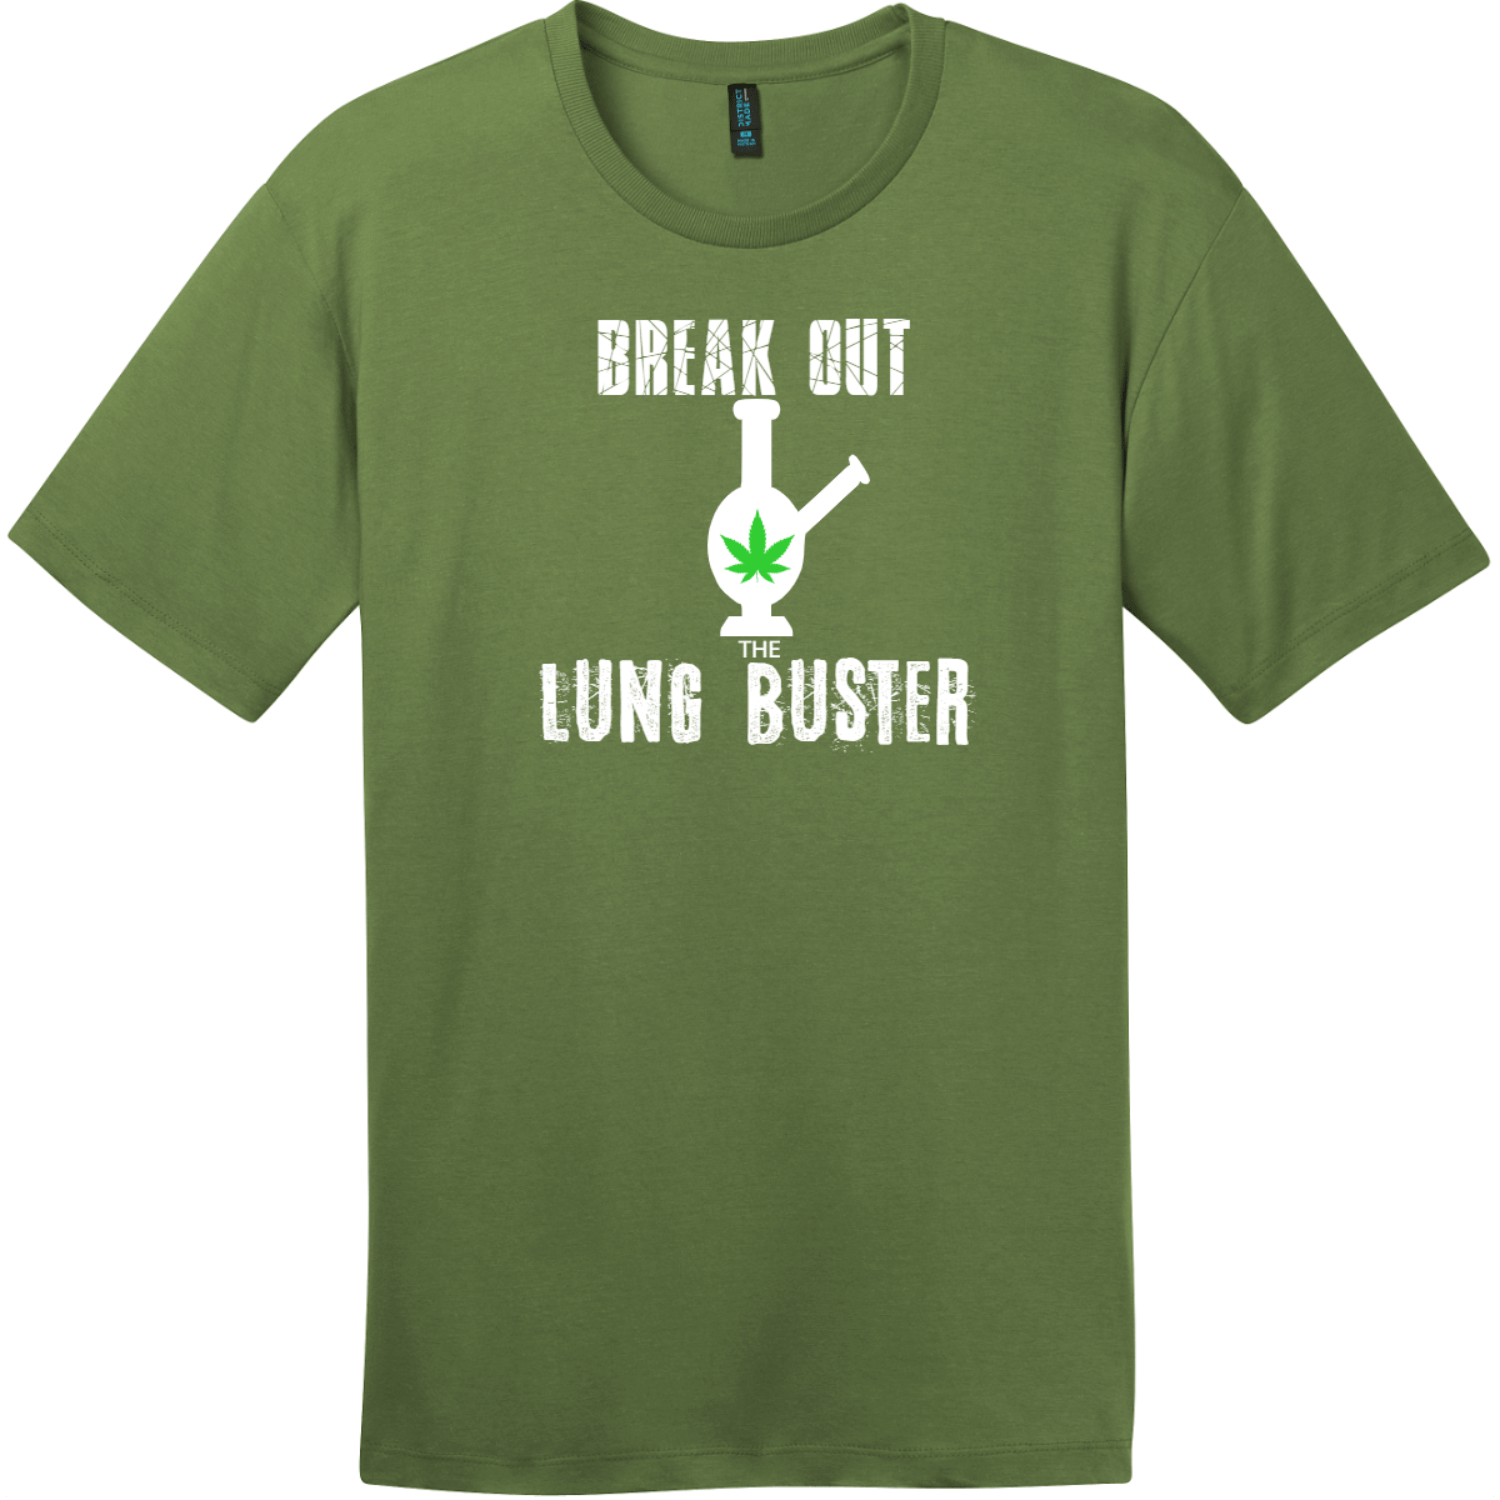 Break Out The Lung Buster Bong T-Shirt Fresh Fatigue District Perfect Weight Tee DT104